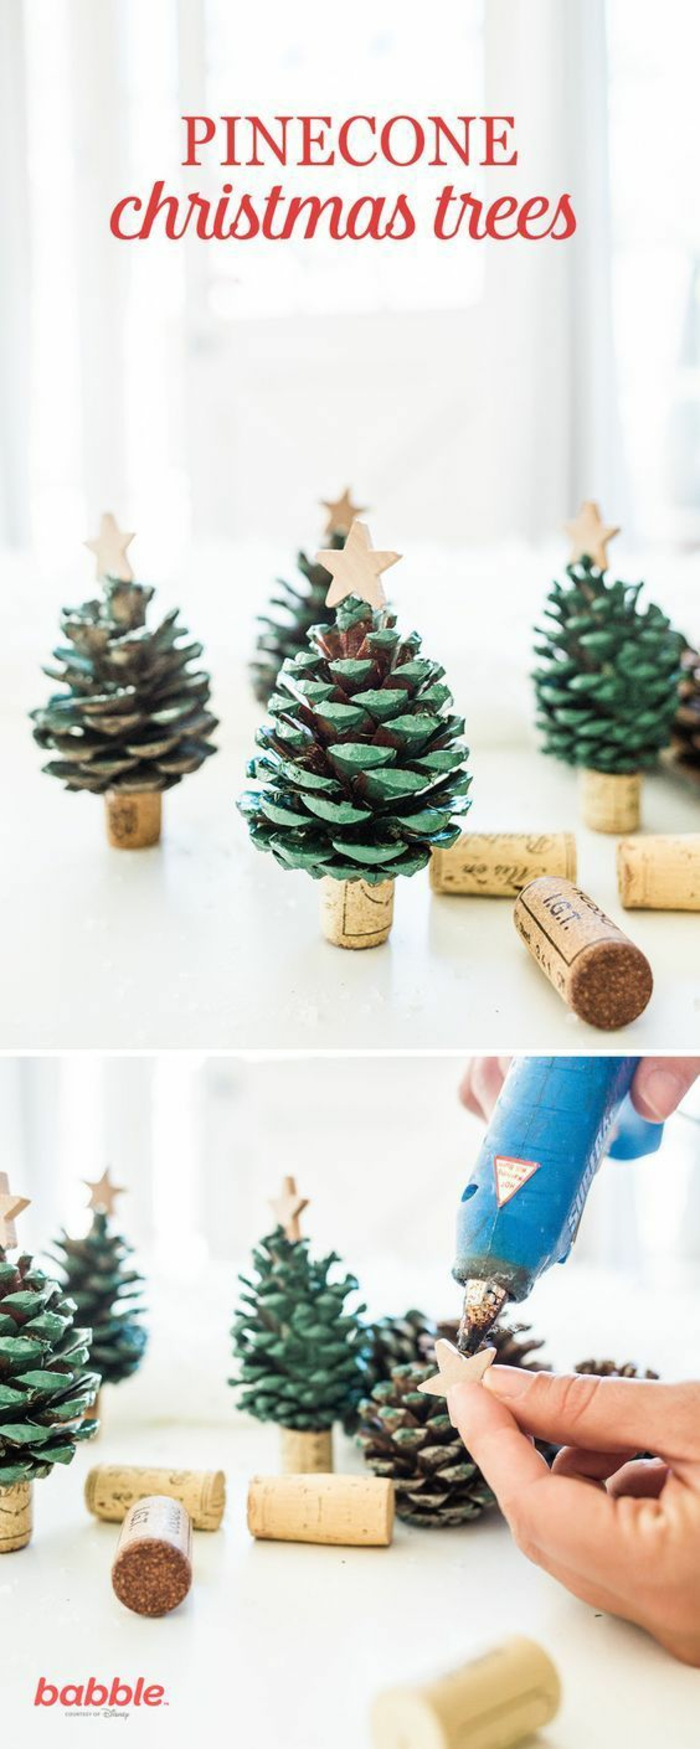 several little christmas trees, made from pine cones painted green and cork wine stoppers, with little golden stars stuck on top, hand putting glue on star with glue gun